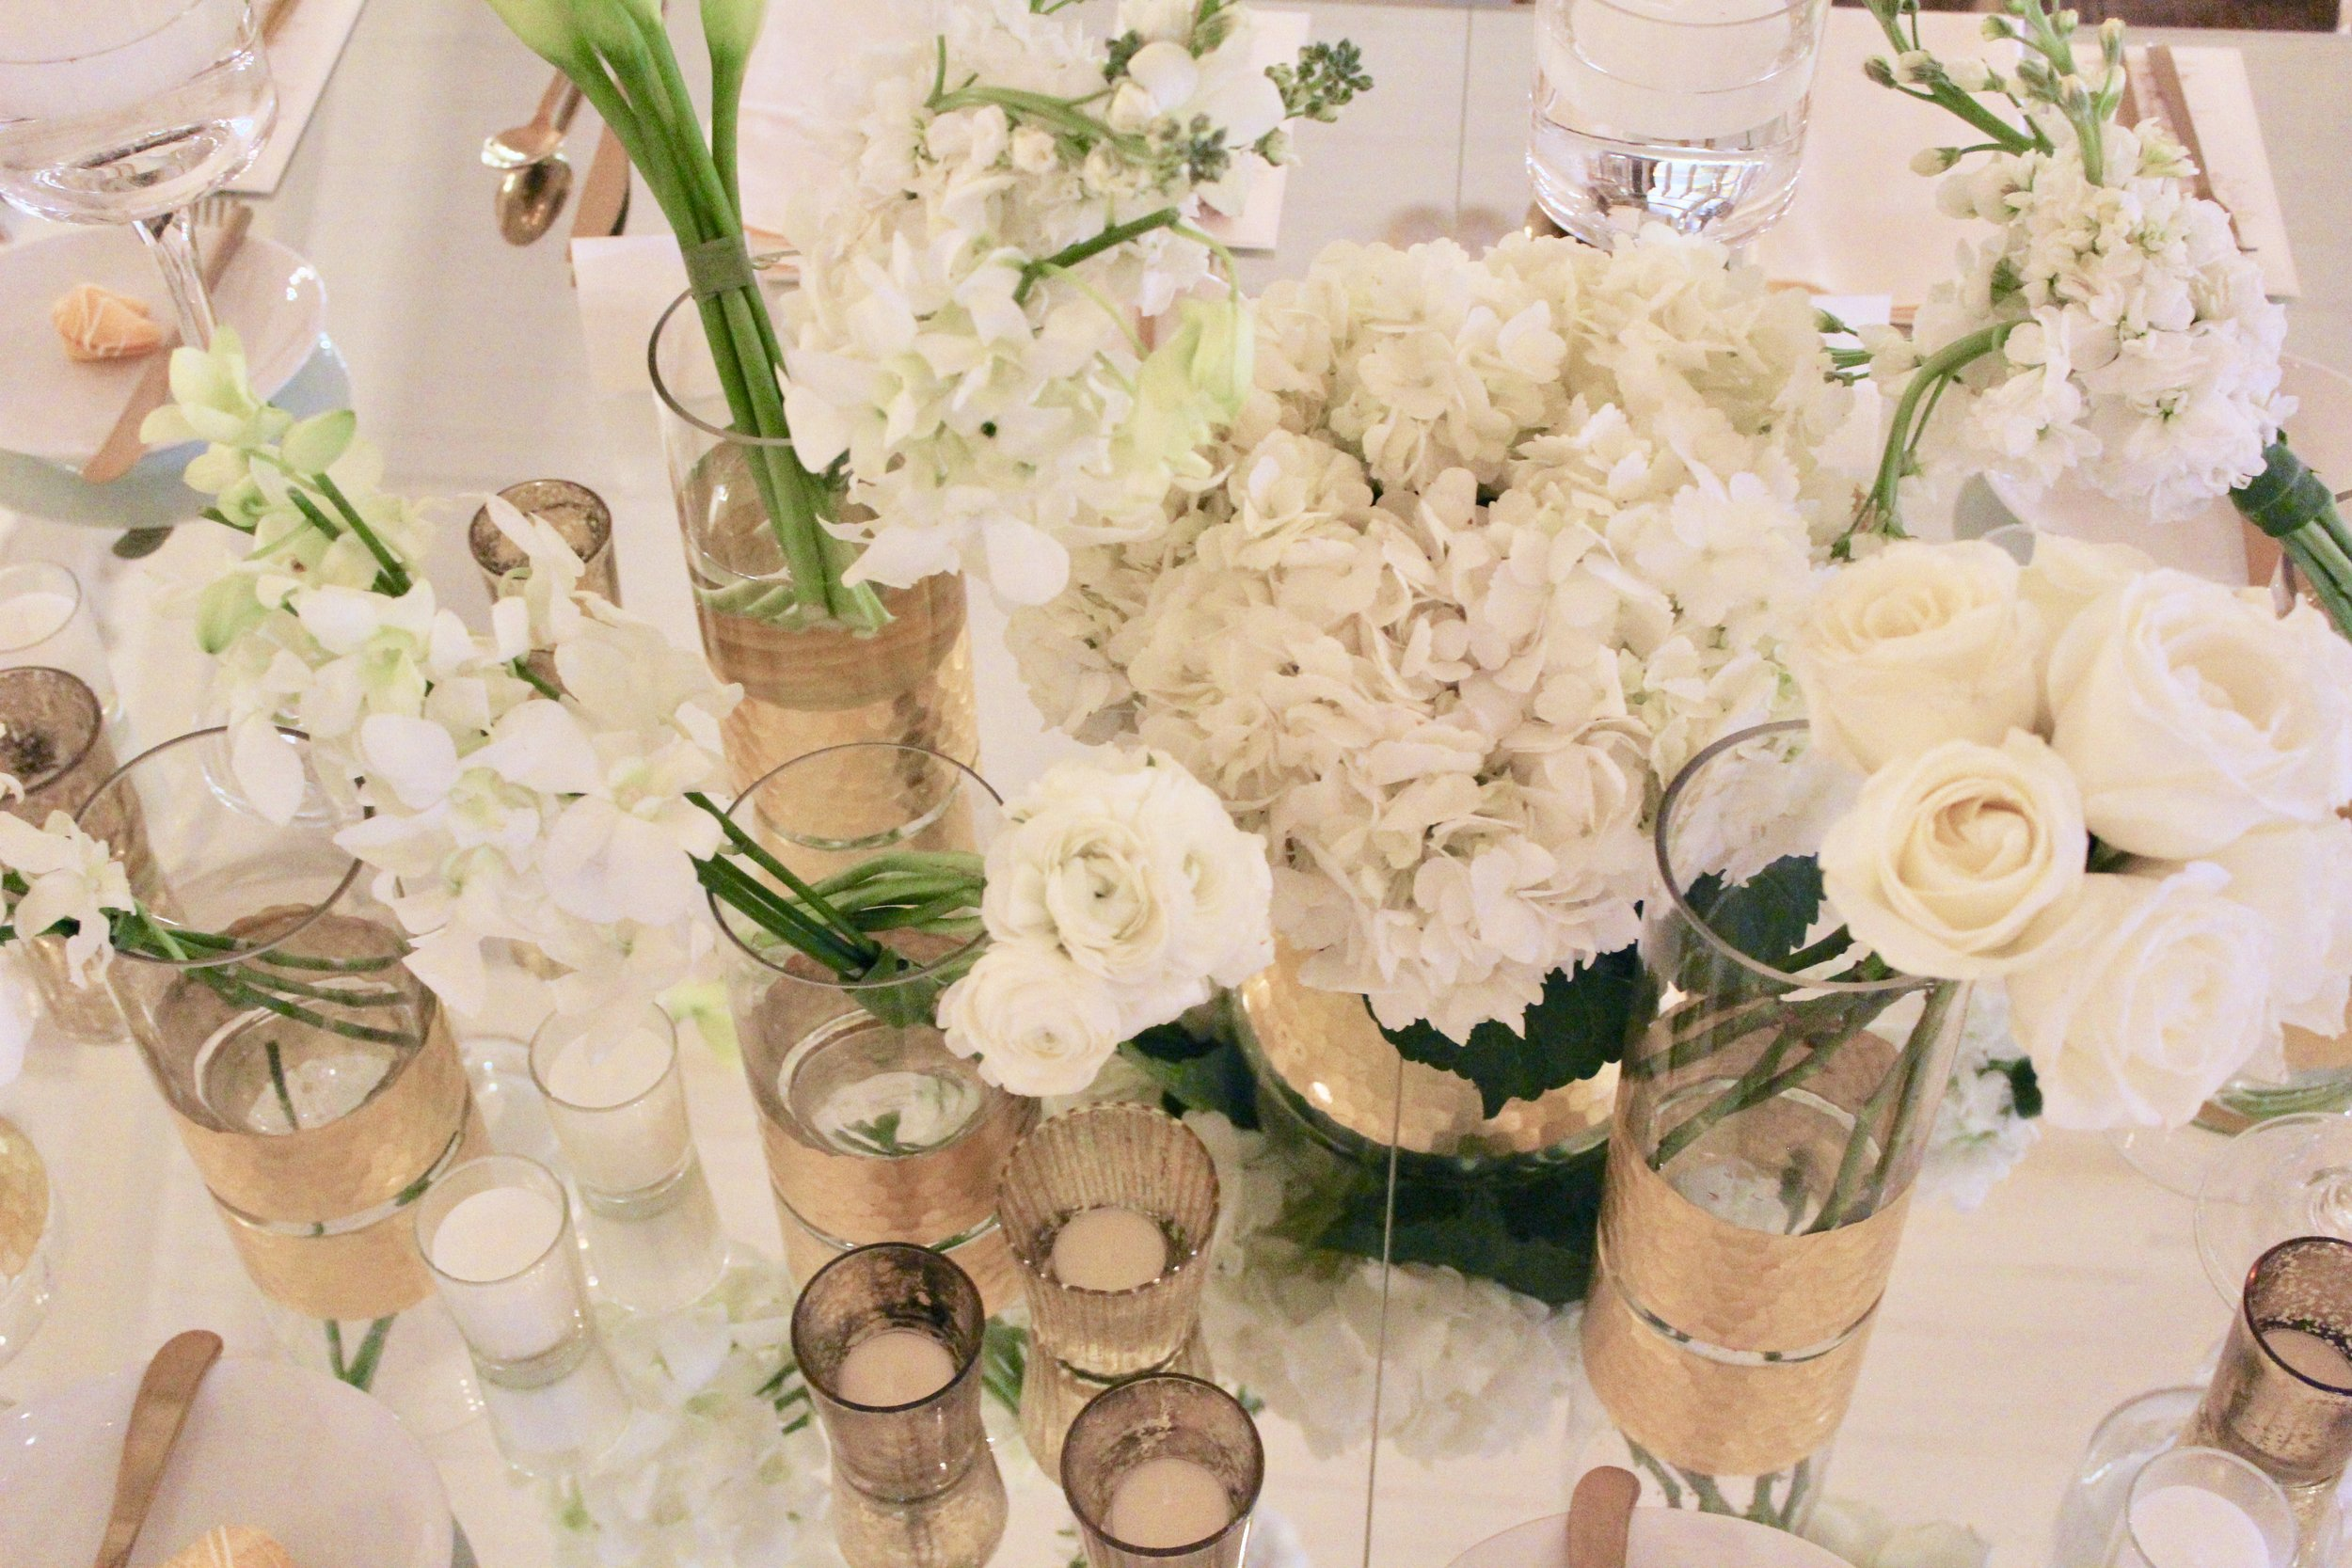 Hyde Park Country Club wedding with green and white florals by Yellow Canary.